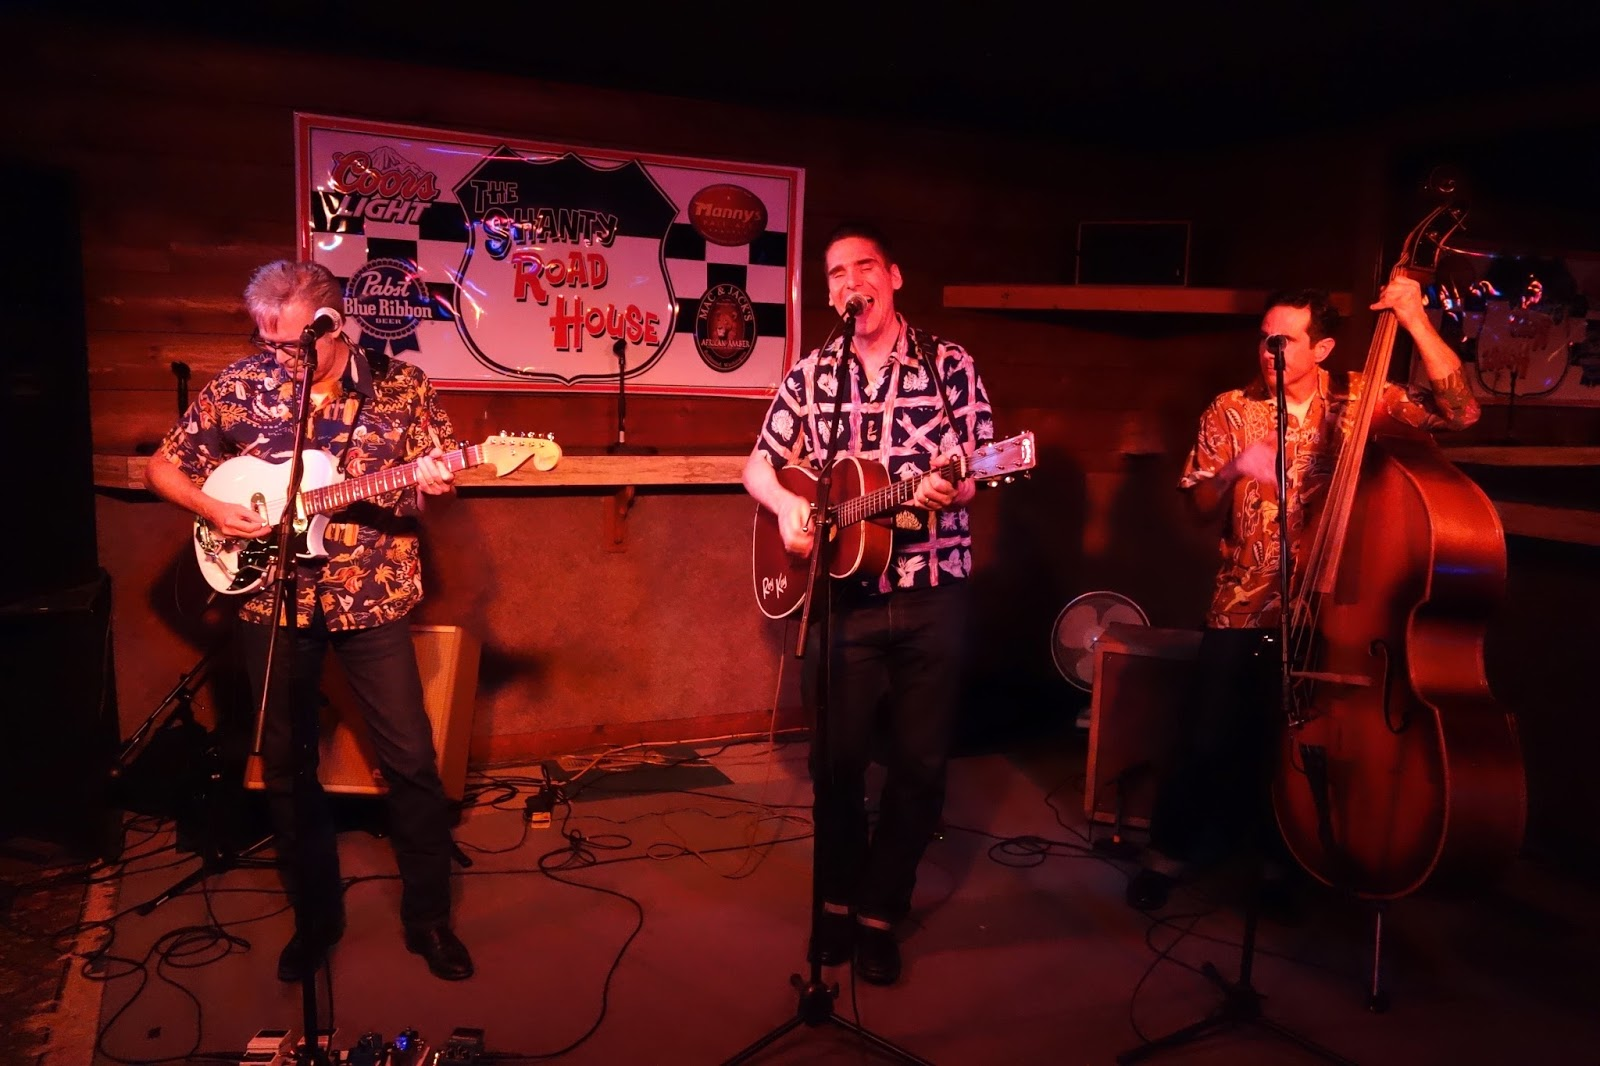 Live Seattle Music In The Clubs The Roy Kay Trio And The Dalharts